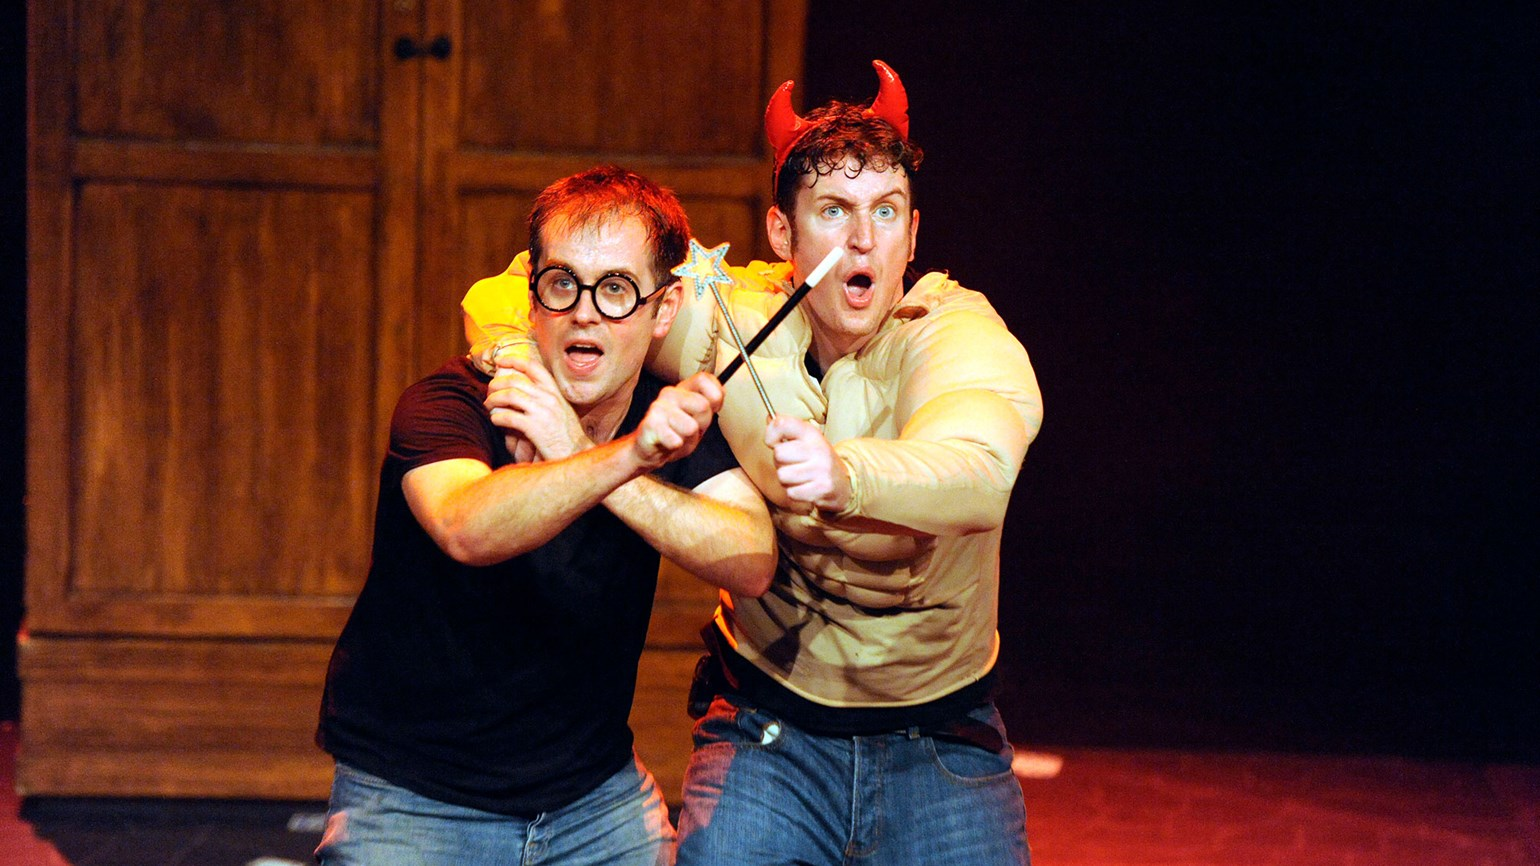 Harry Potter parody casts comic spell at Bally's